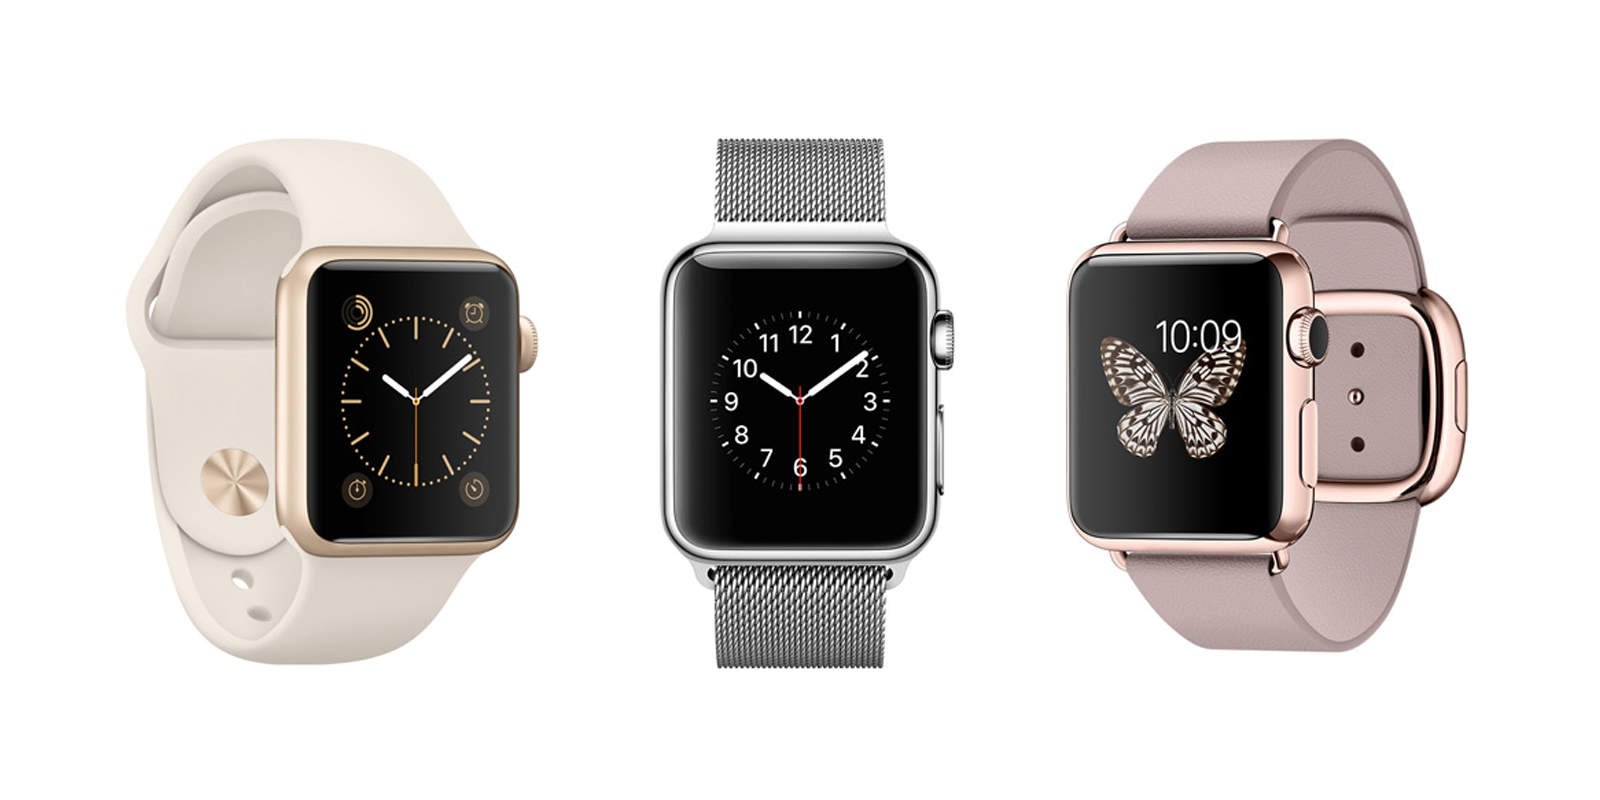 Apple Assumes You Ll Own More Than One Apple Watch Cult